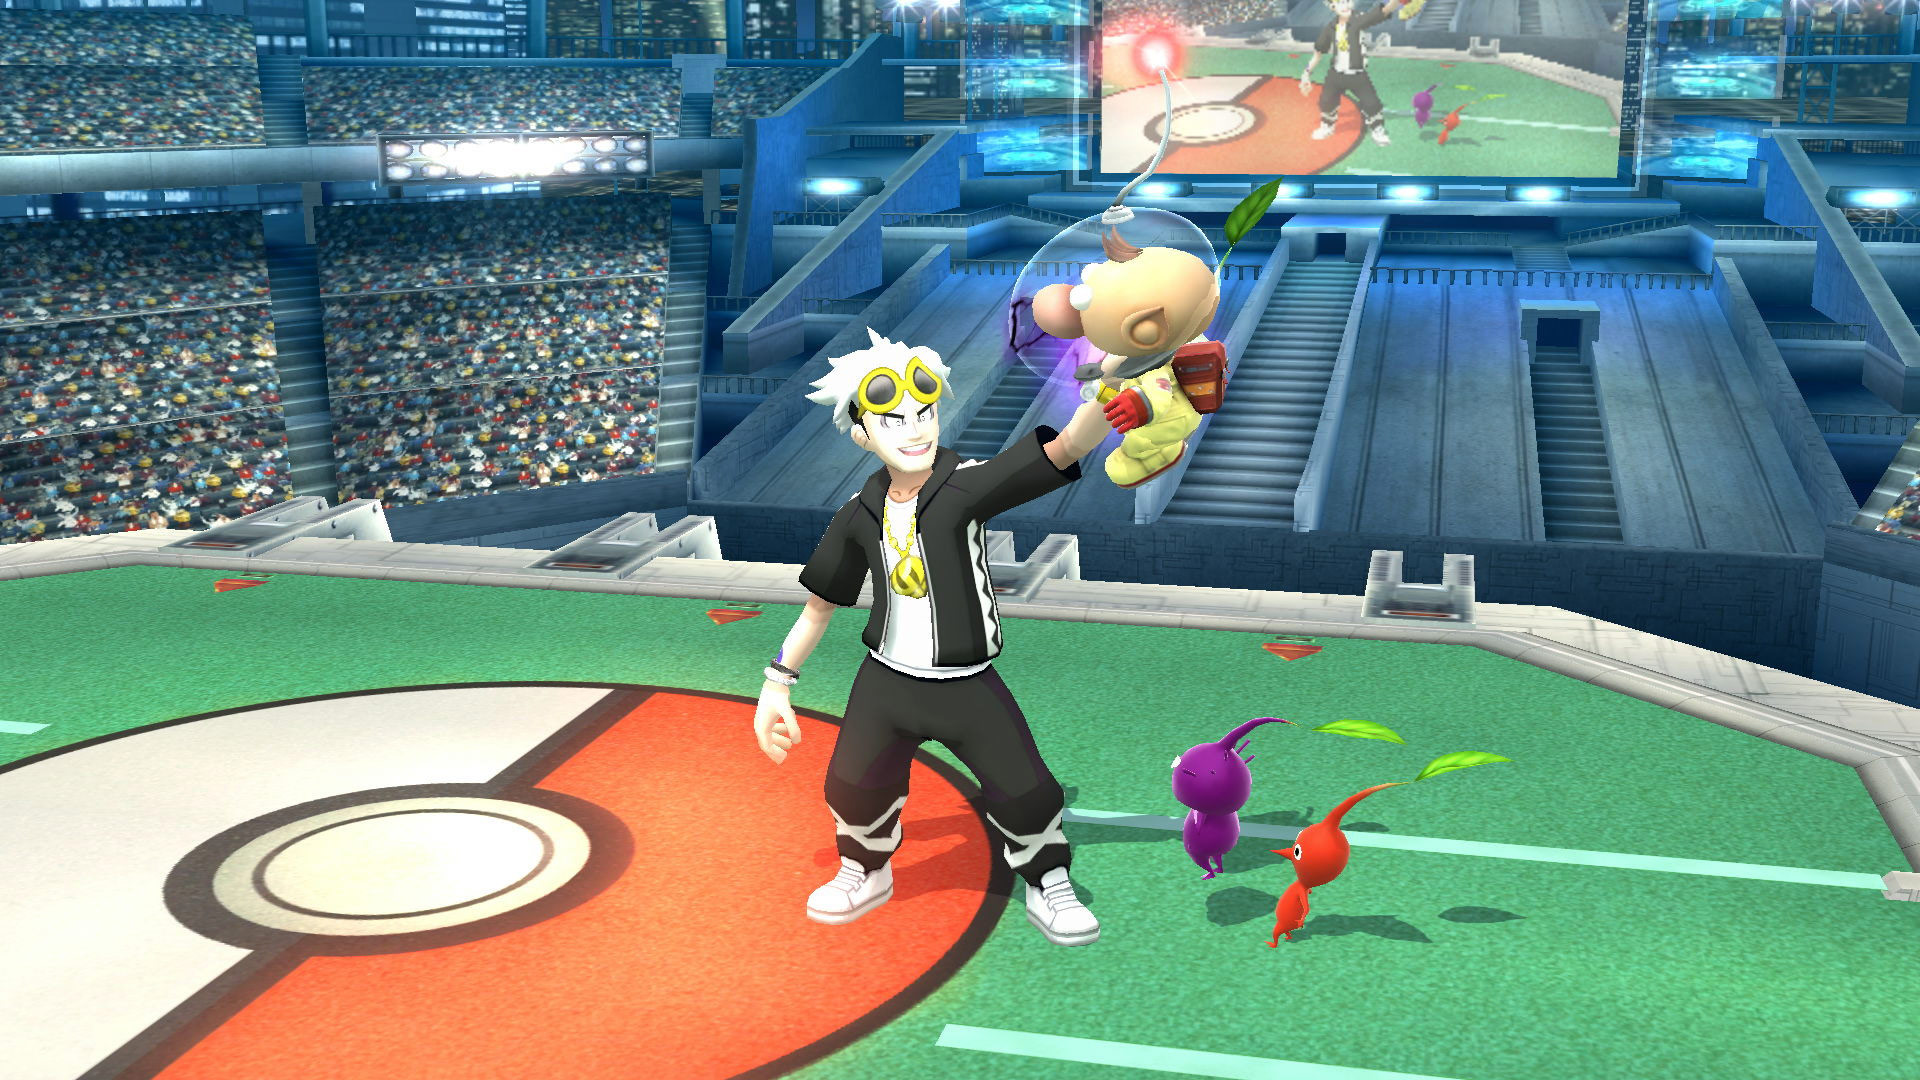 Pokemon Sun and Moon mods in Super Smash Bros.  15 out of 15 image gallery